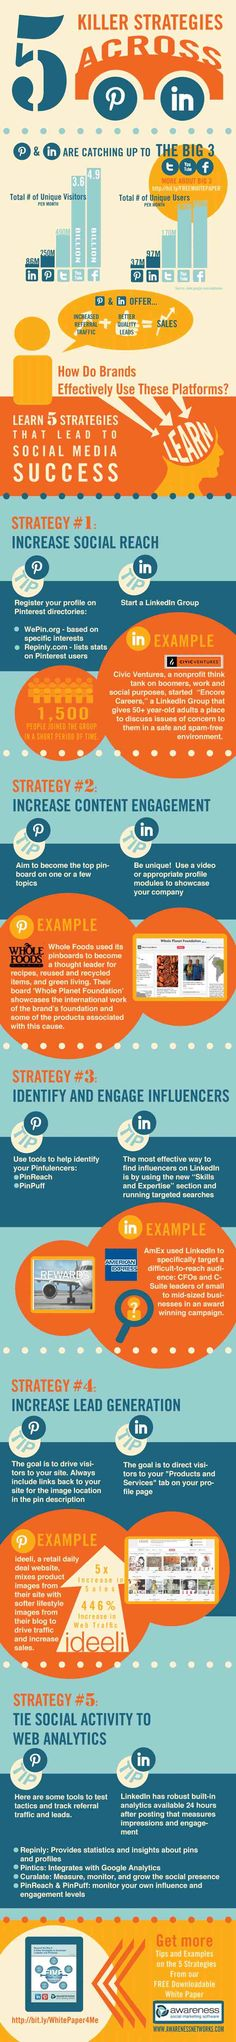 Strategies for Brands to Dominate Pinterest and LinkedIn [Infographic]